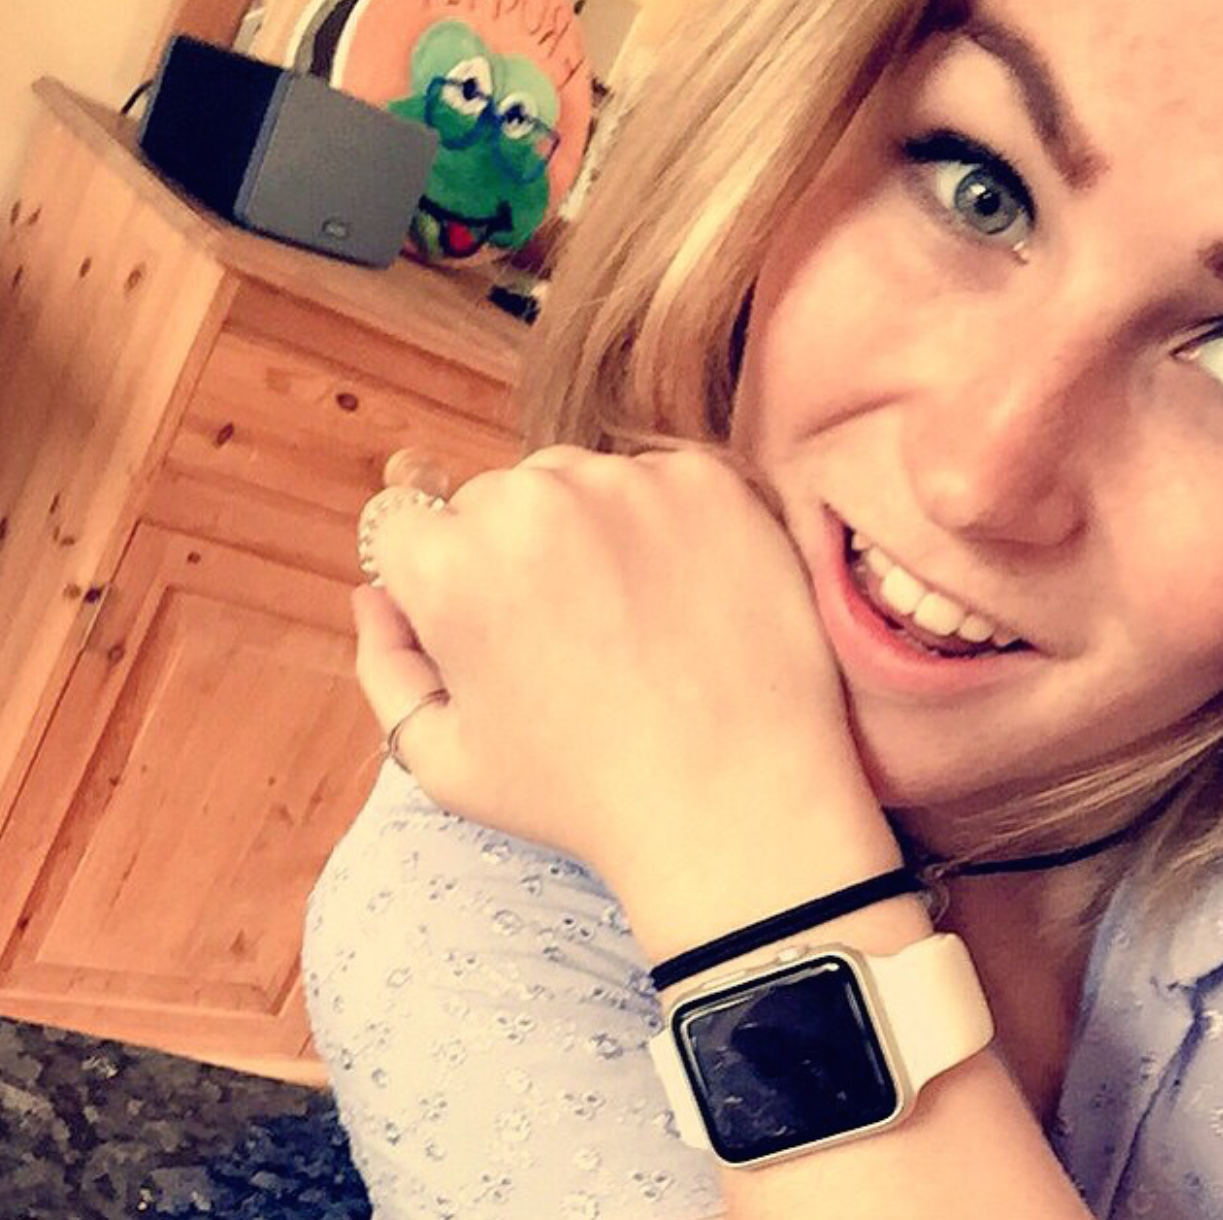 Living with Apple Watch and Usher Syndrome